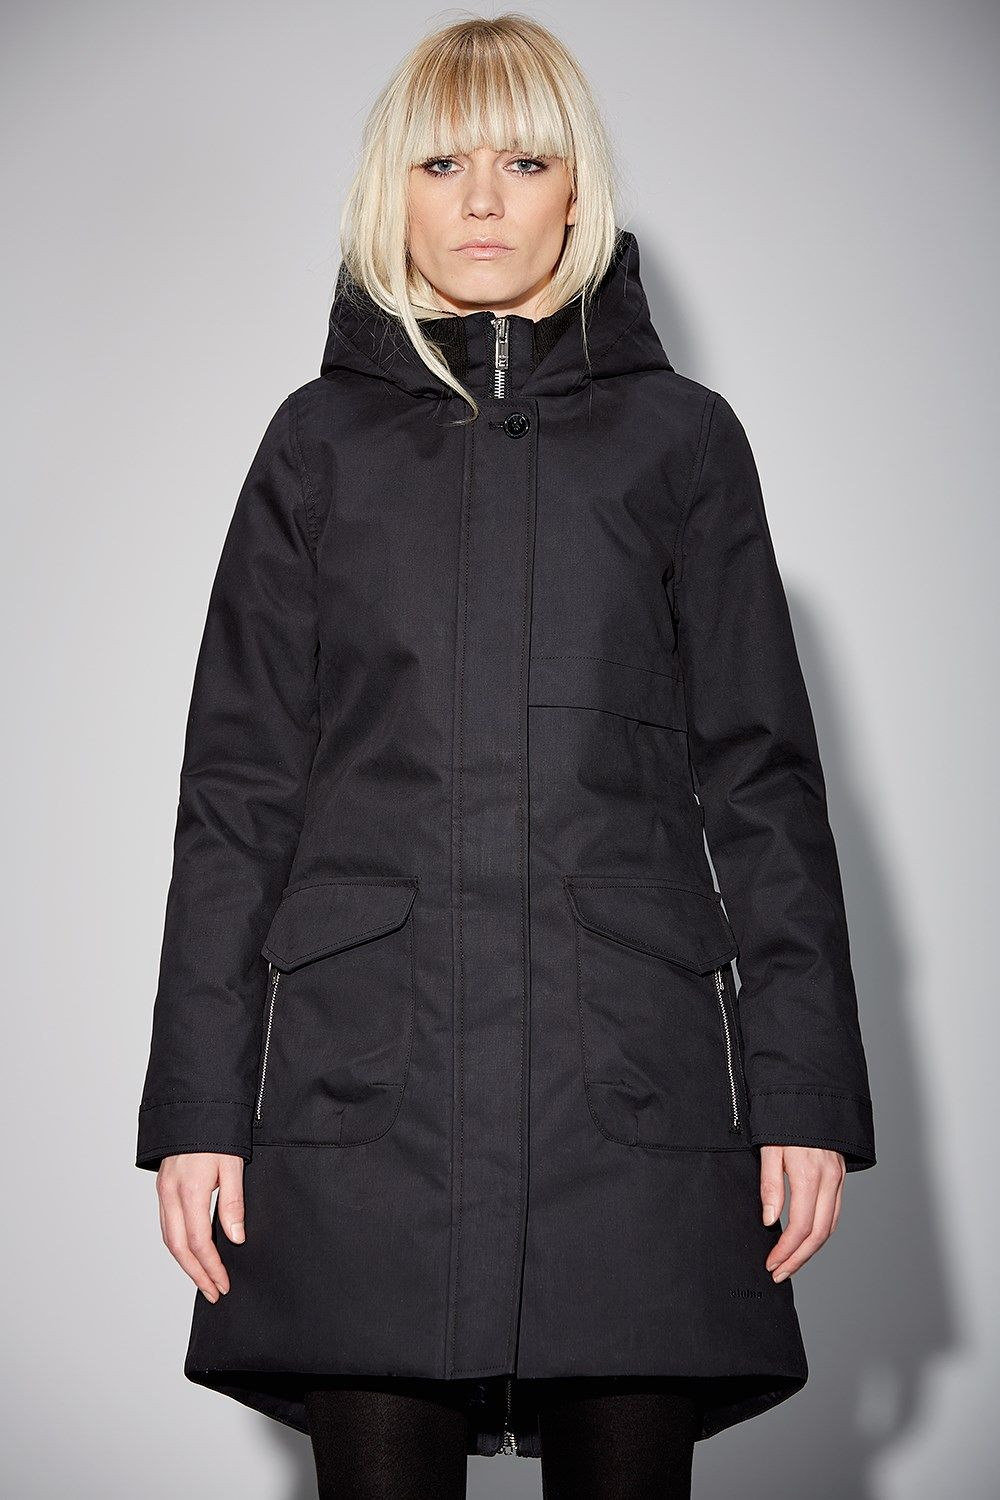 Monica is one of Elvine's warmest winter jackets with 180g